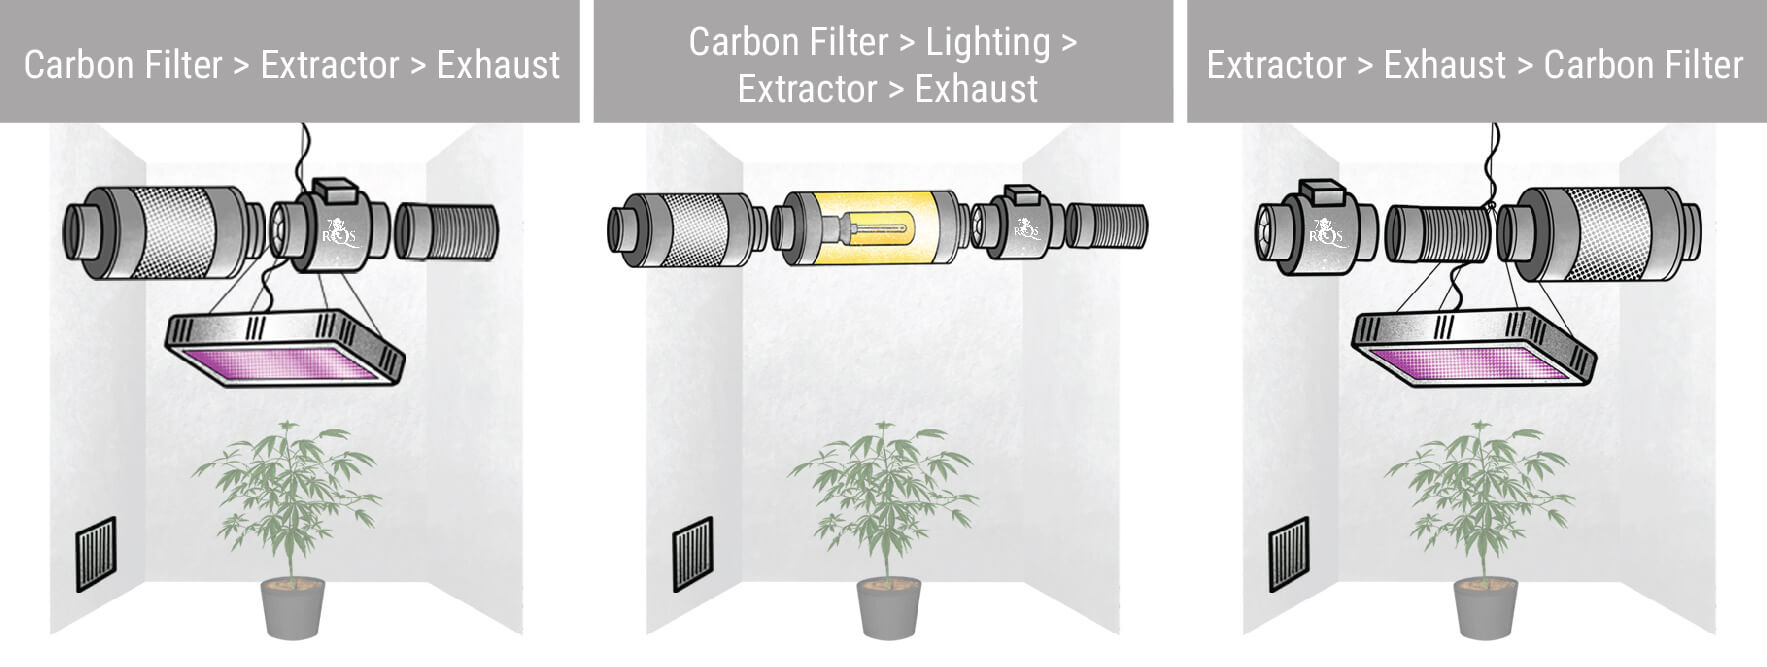 Different Extractor and Carbon Filter Configurations